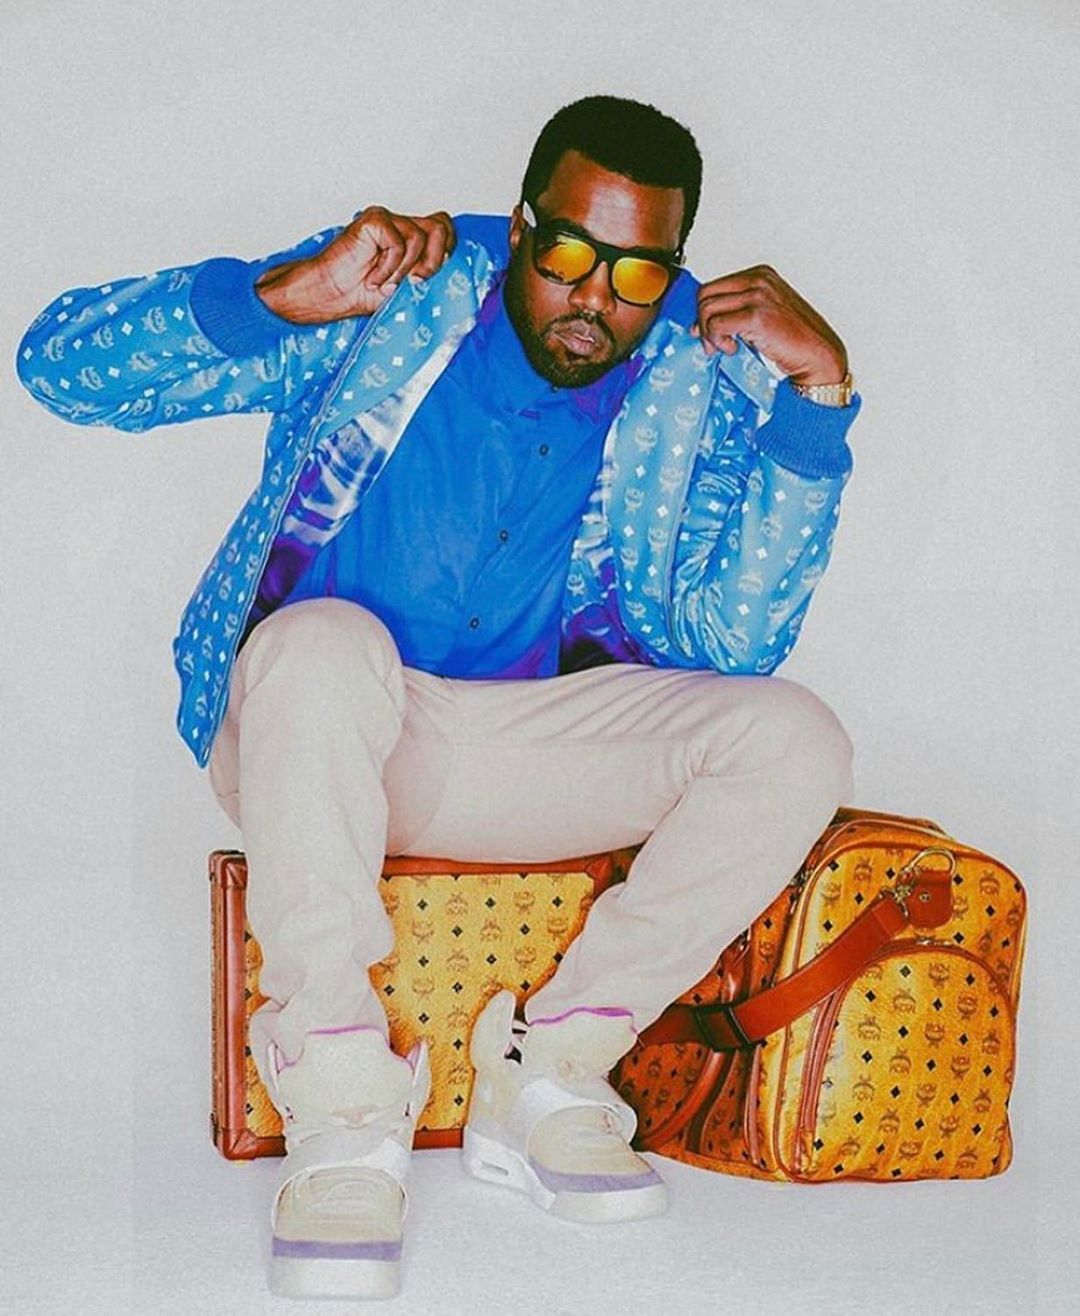 Teamkanyedaily On Instagram Unreleased Kanye West Complex Cover Shoot In 2008 Styled By Tazarnold Throwbackkanye In 2020 Kanye West Style Kanye